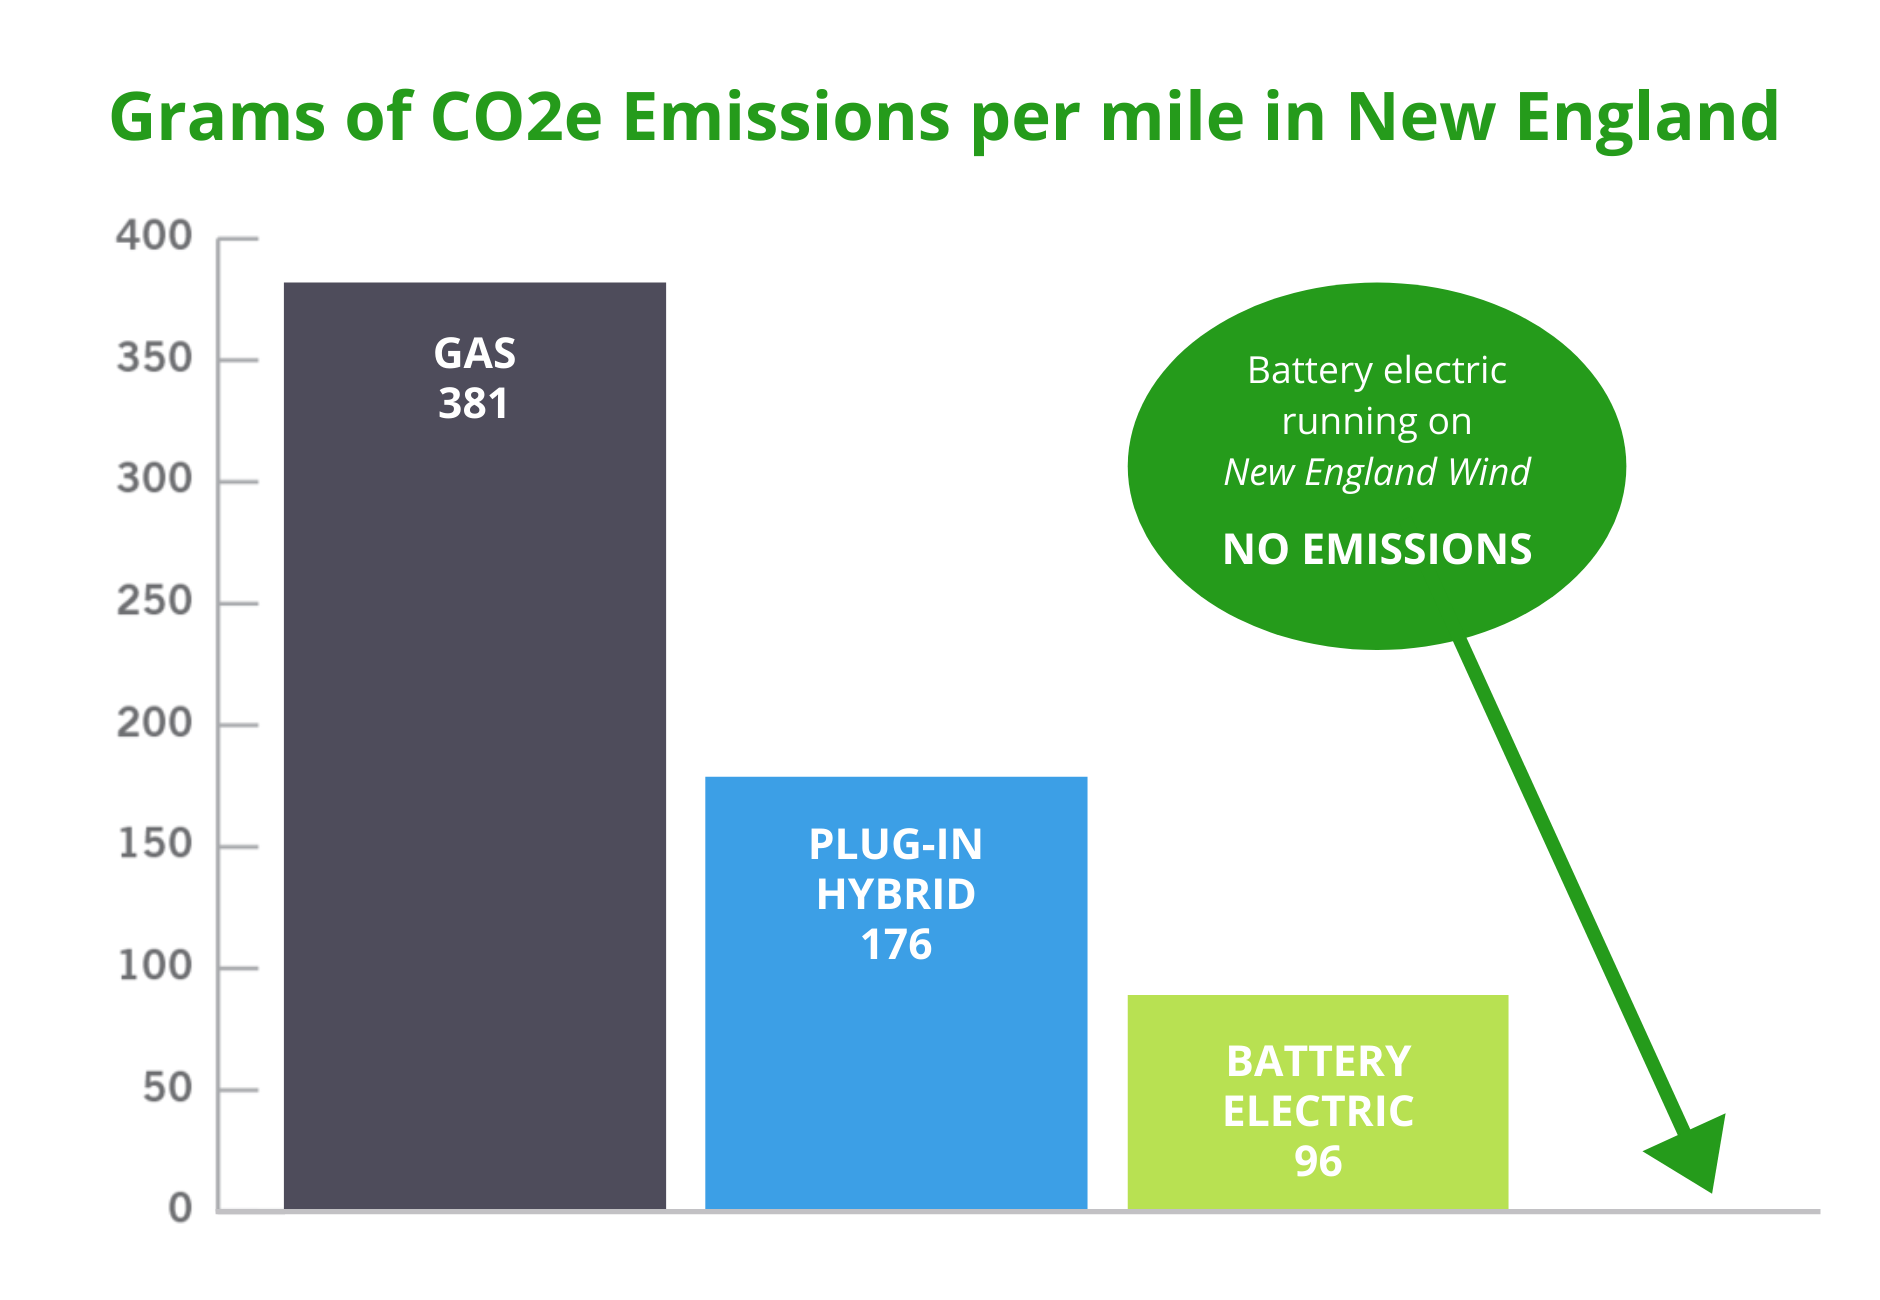 Grams of CO2 emissions per mile in New England